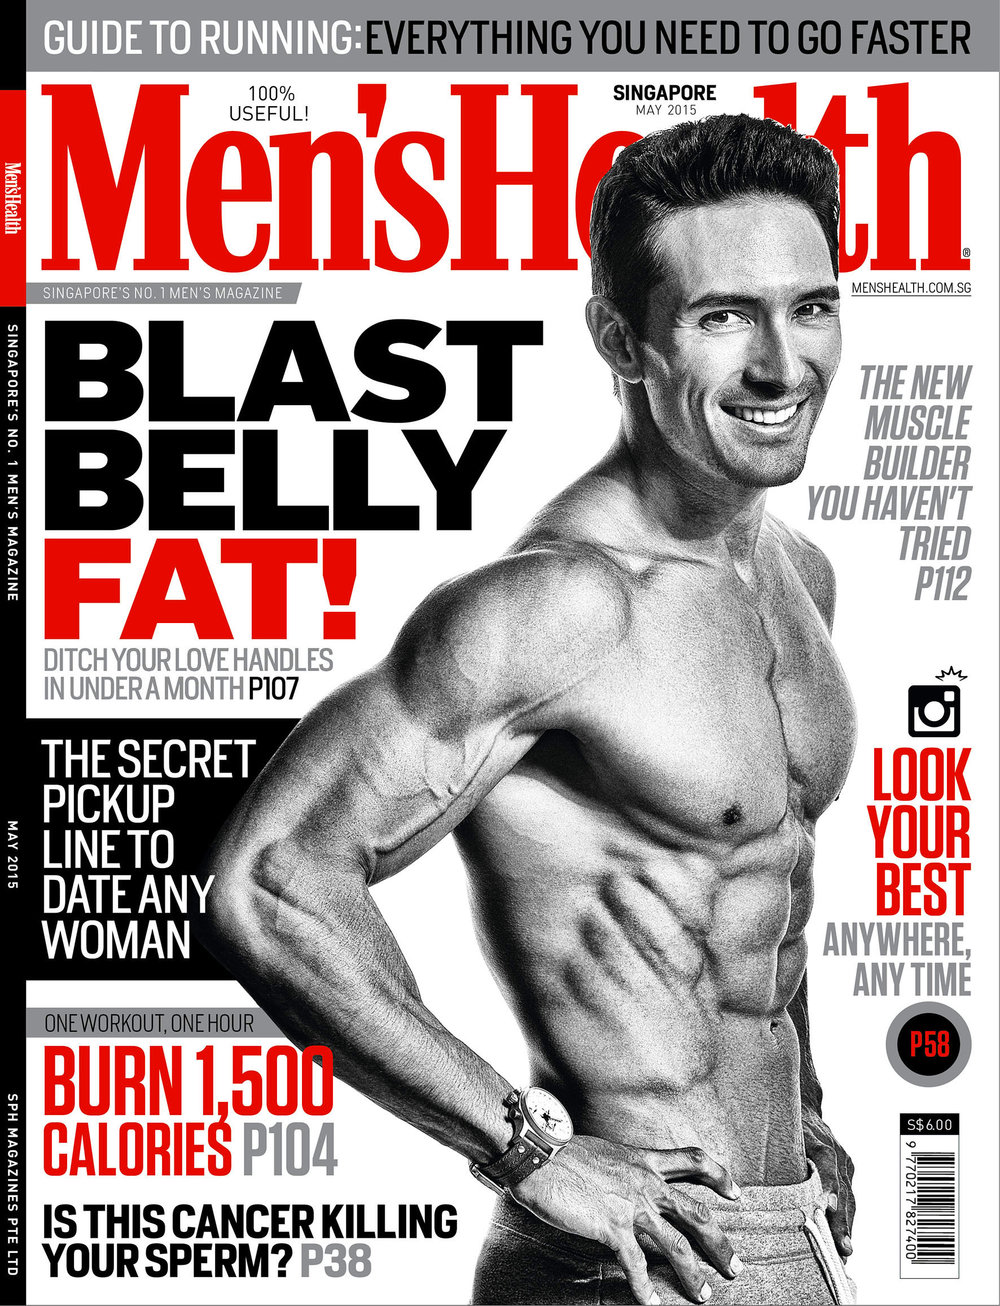 MH COVER May 2015.jpg